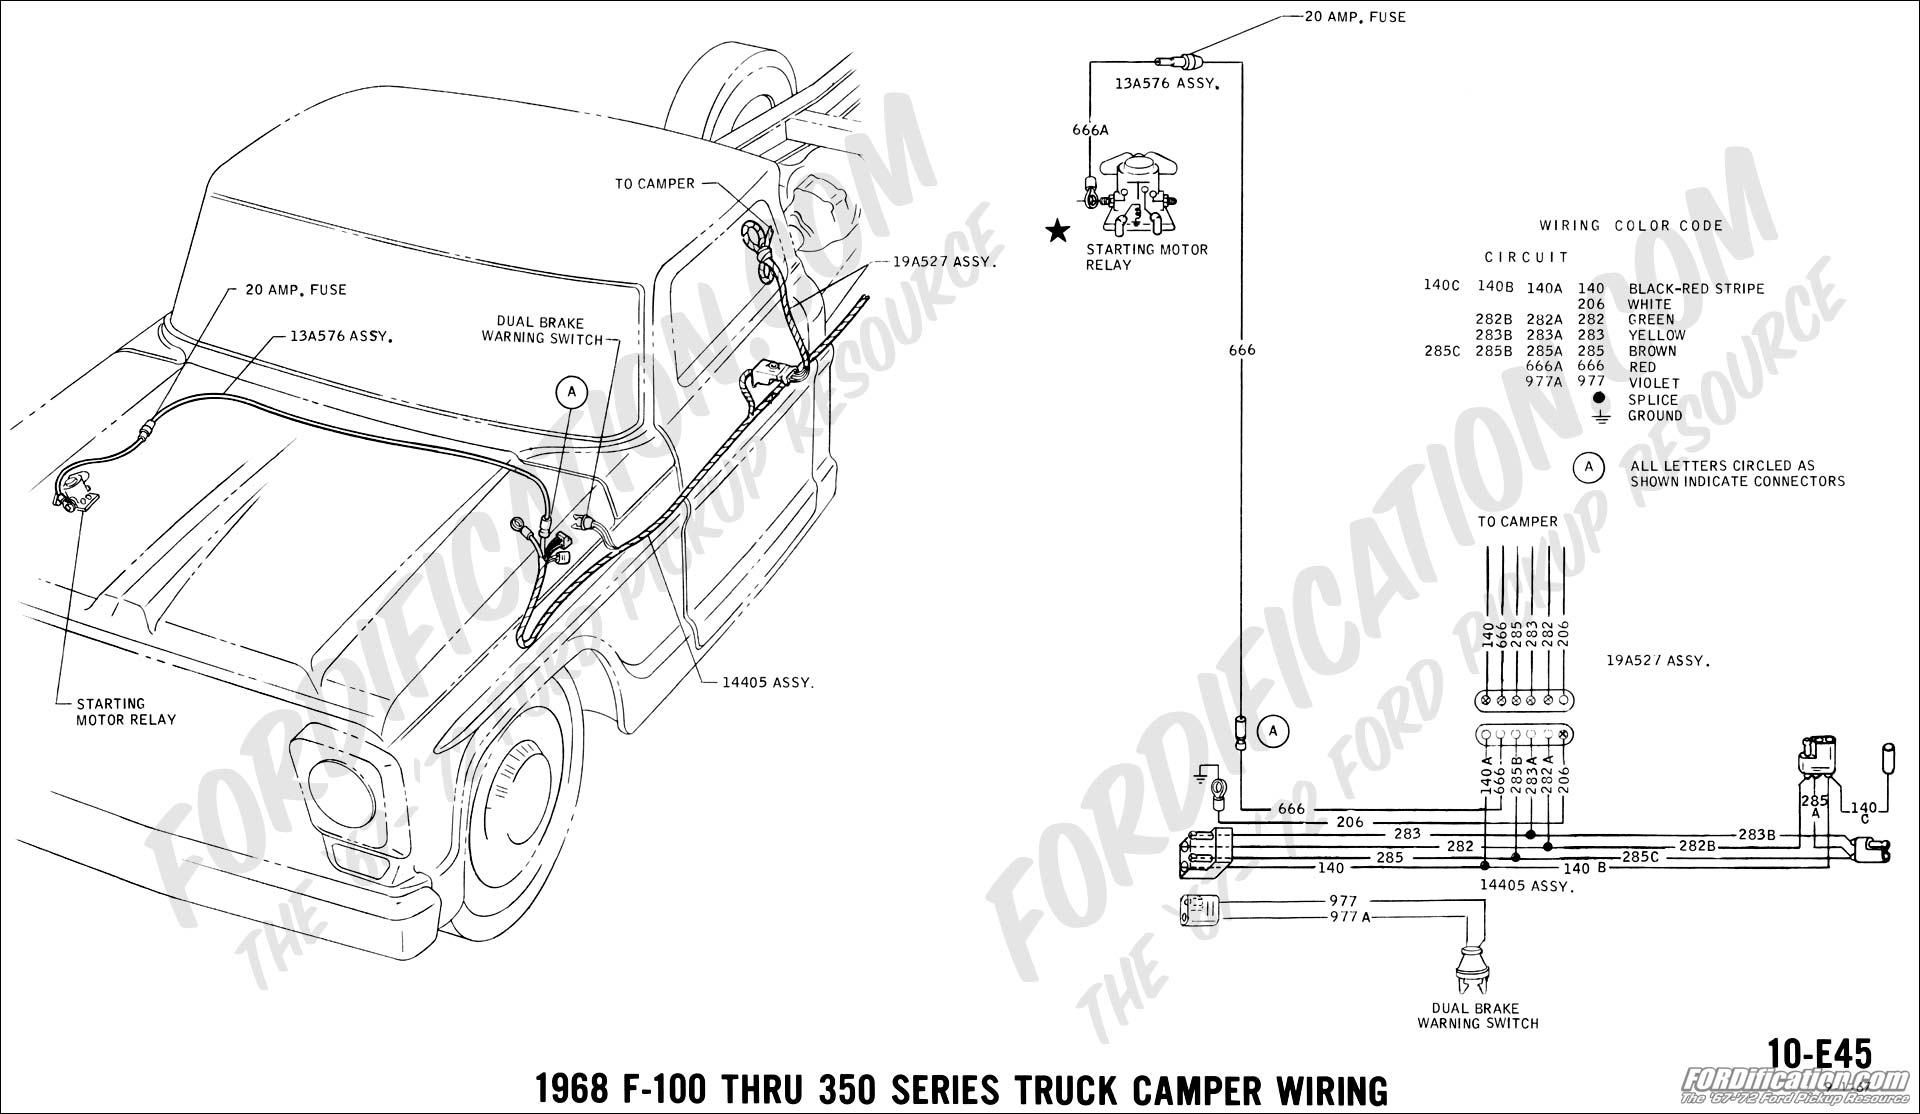 68 47 ford truck technical drawings and schematics section h wiring truck camper wiring diagram at arjmand.co